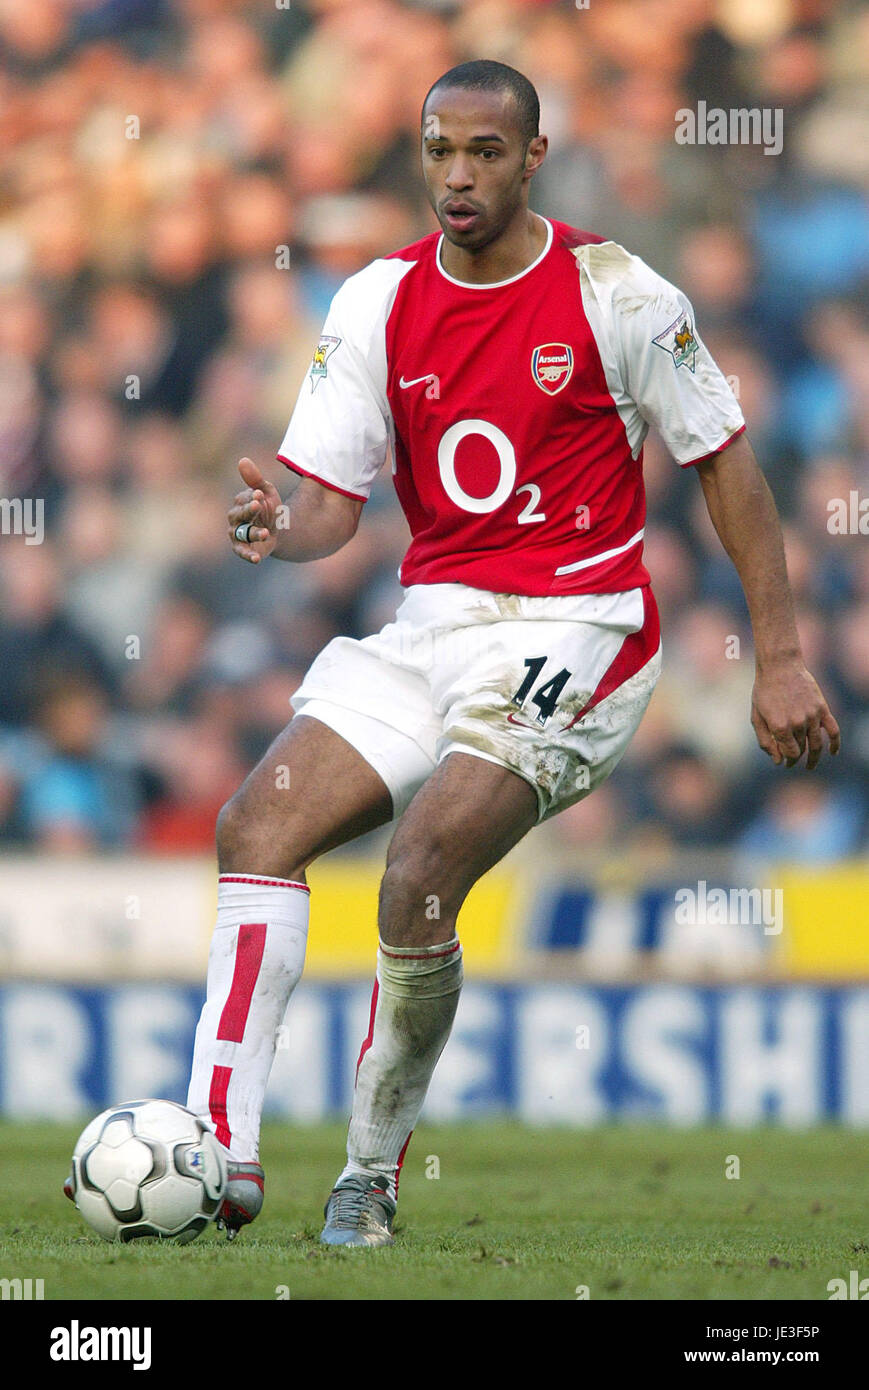 grabadora Servicio fósil  THIERRY HENRY ARSENAL FC REEBOK STADIUM BOLTON 22 February 2003 Stock Photo  - Alamy